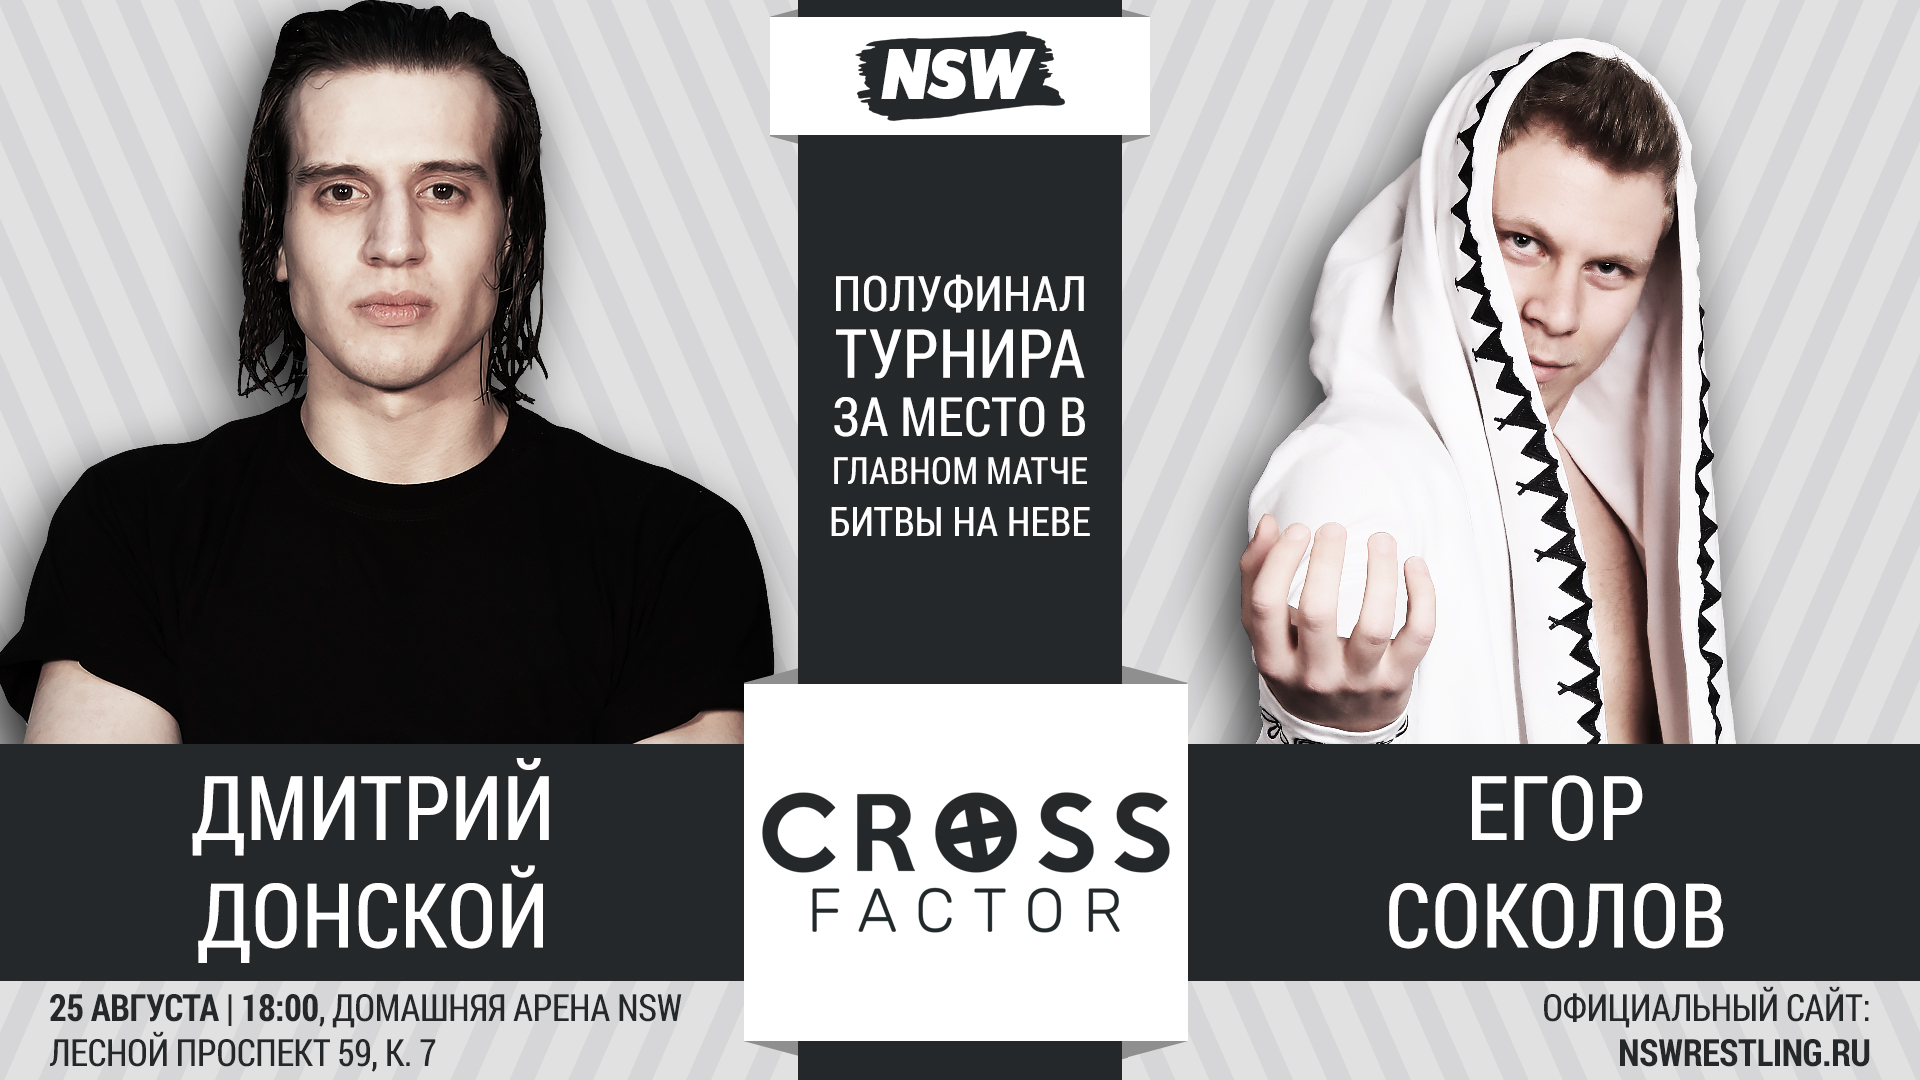 NSW Cross Factor (25/08): Дмитрий Донской против Егора Соколова